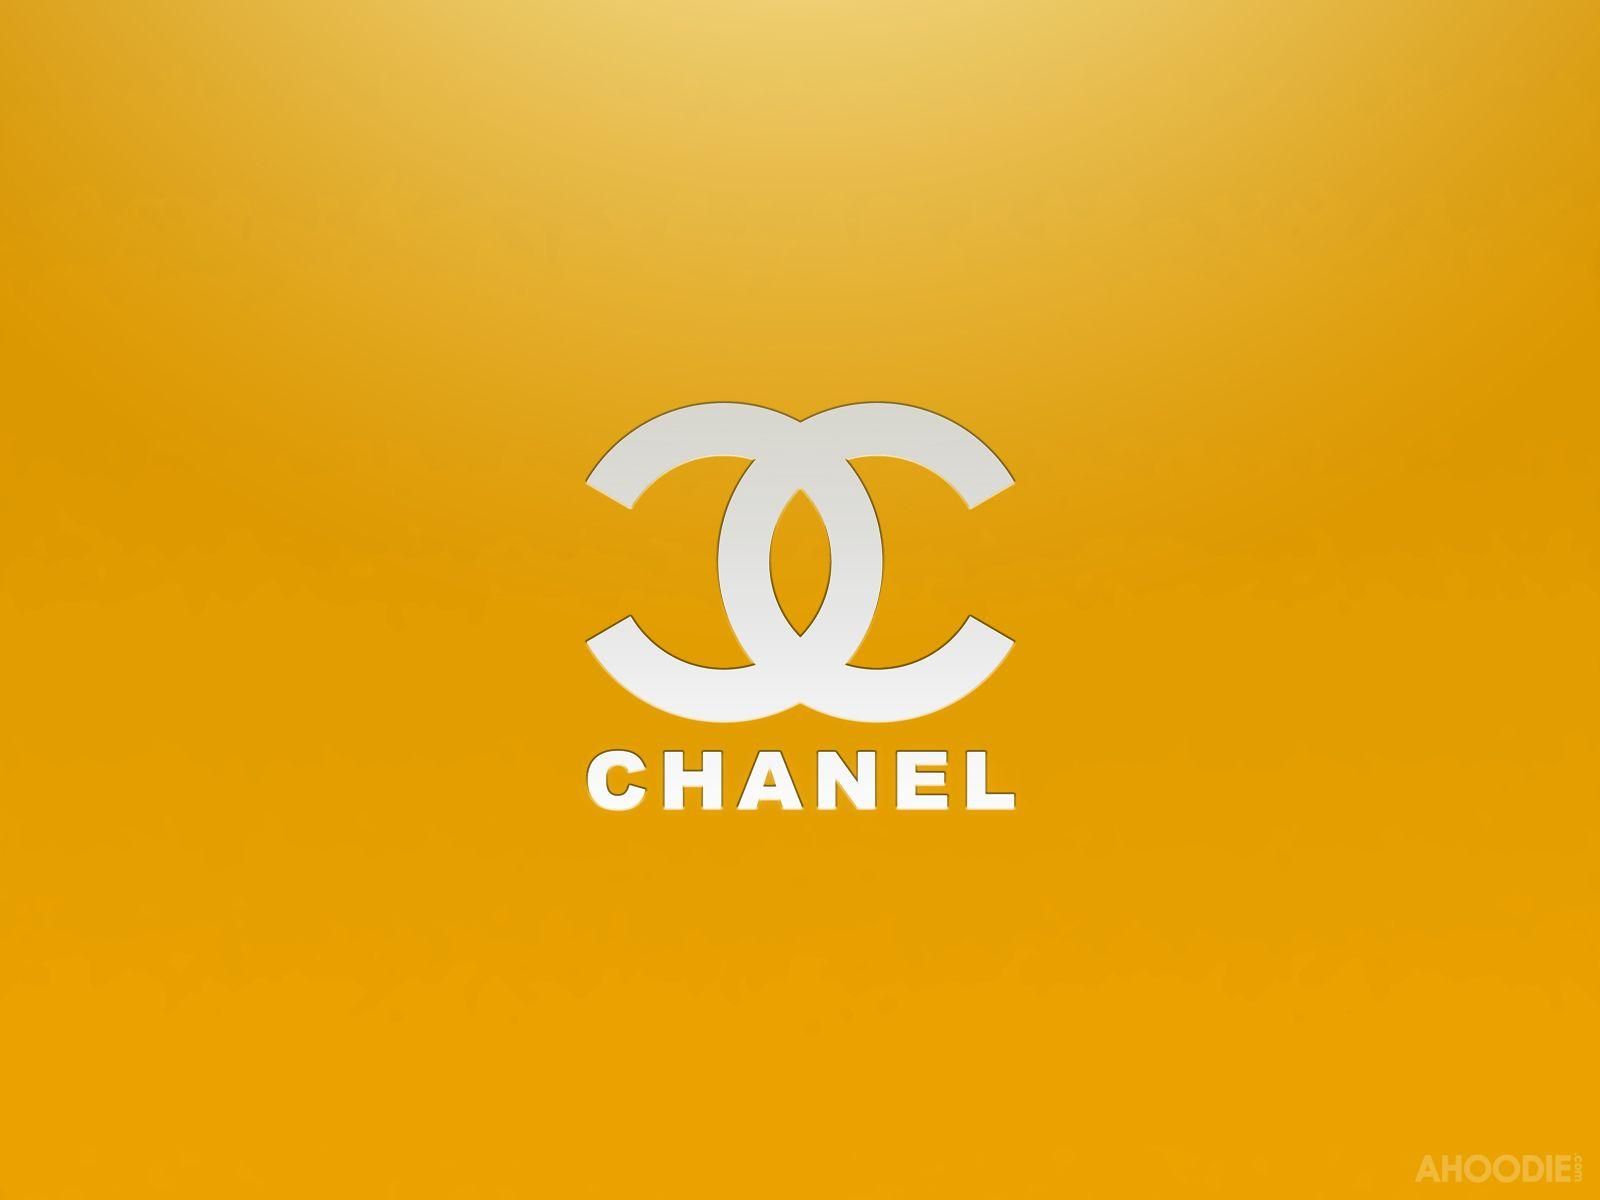 chanel logo wallpapers #1931